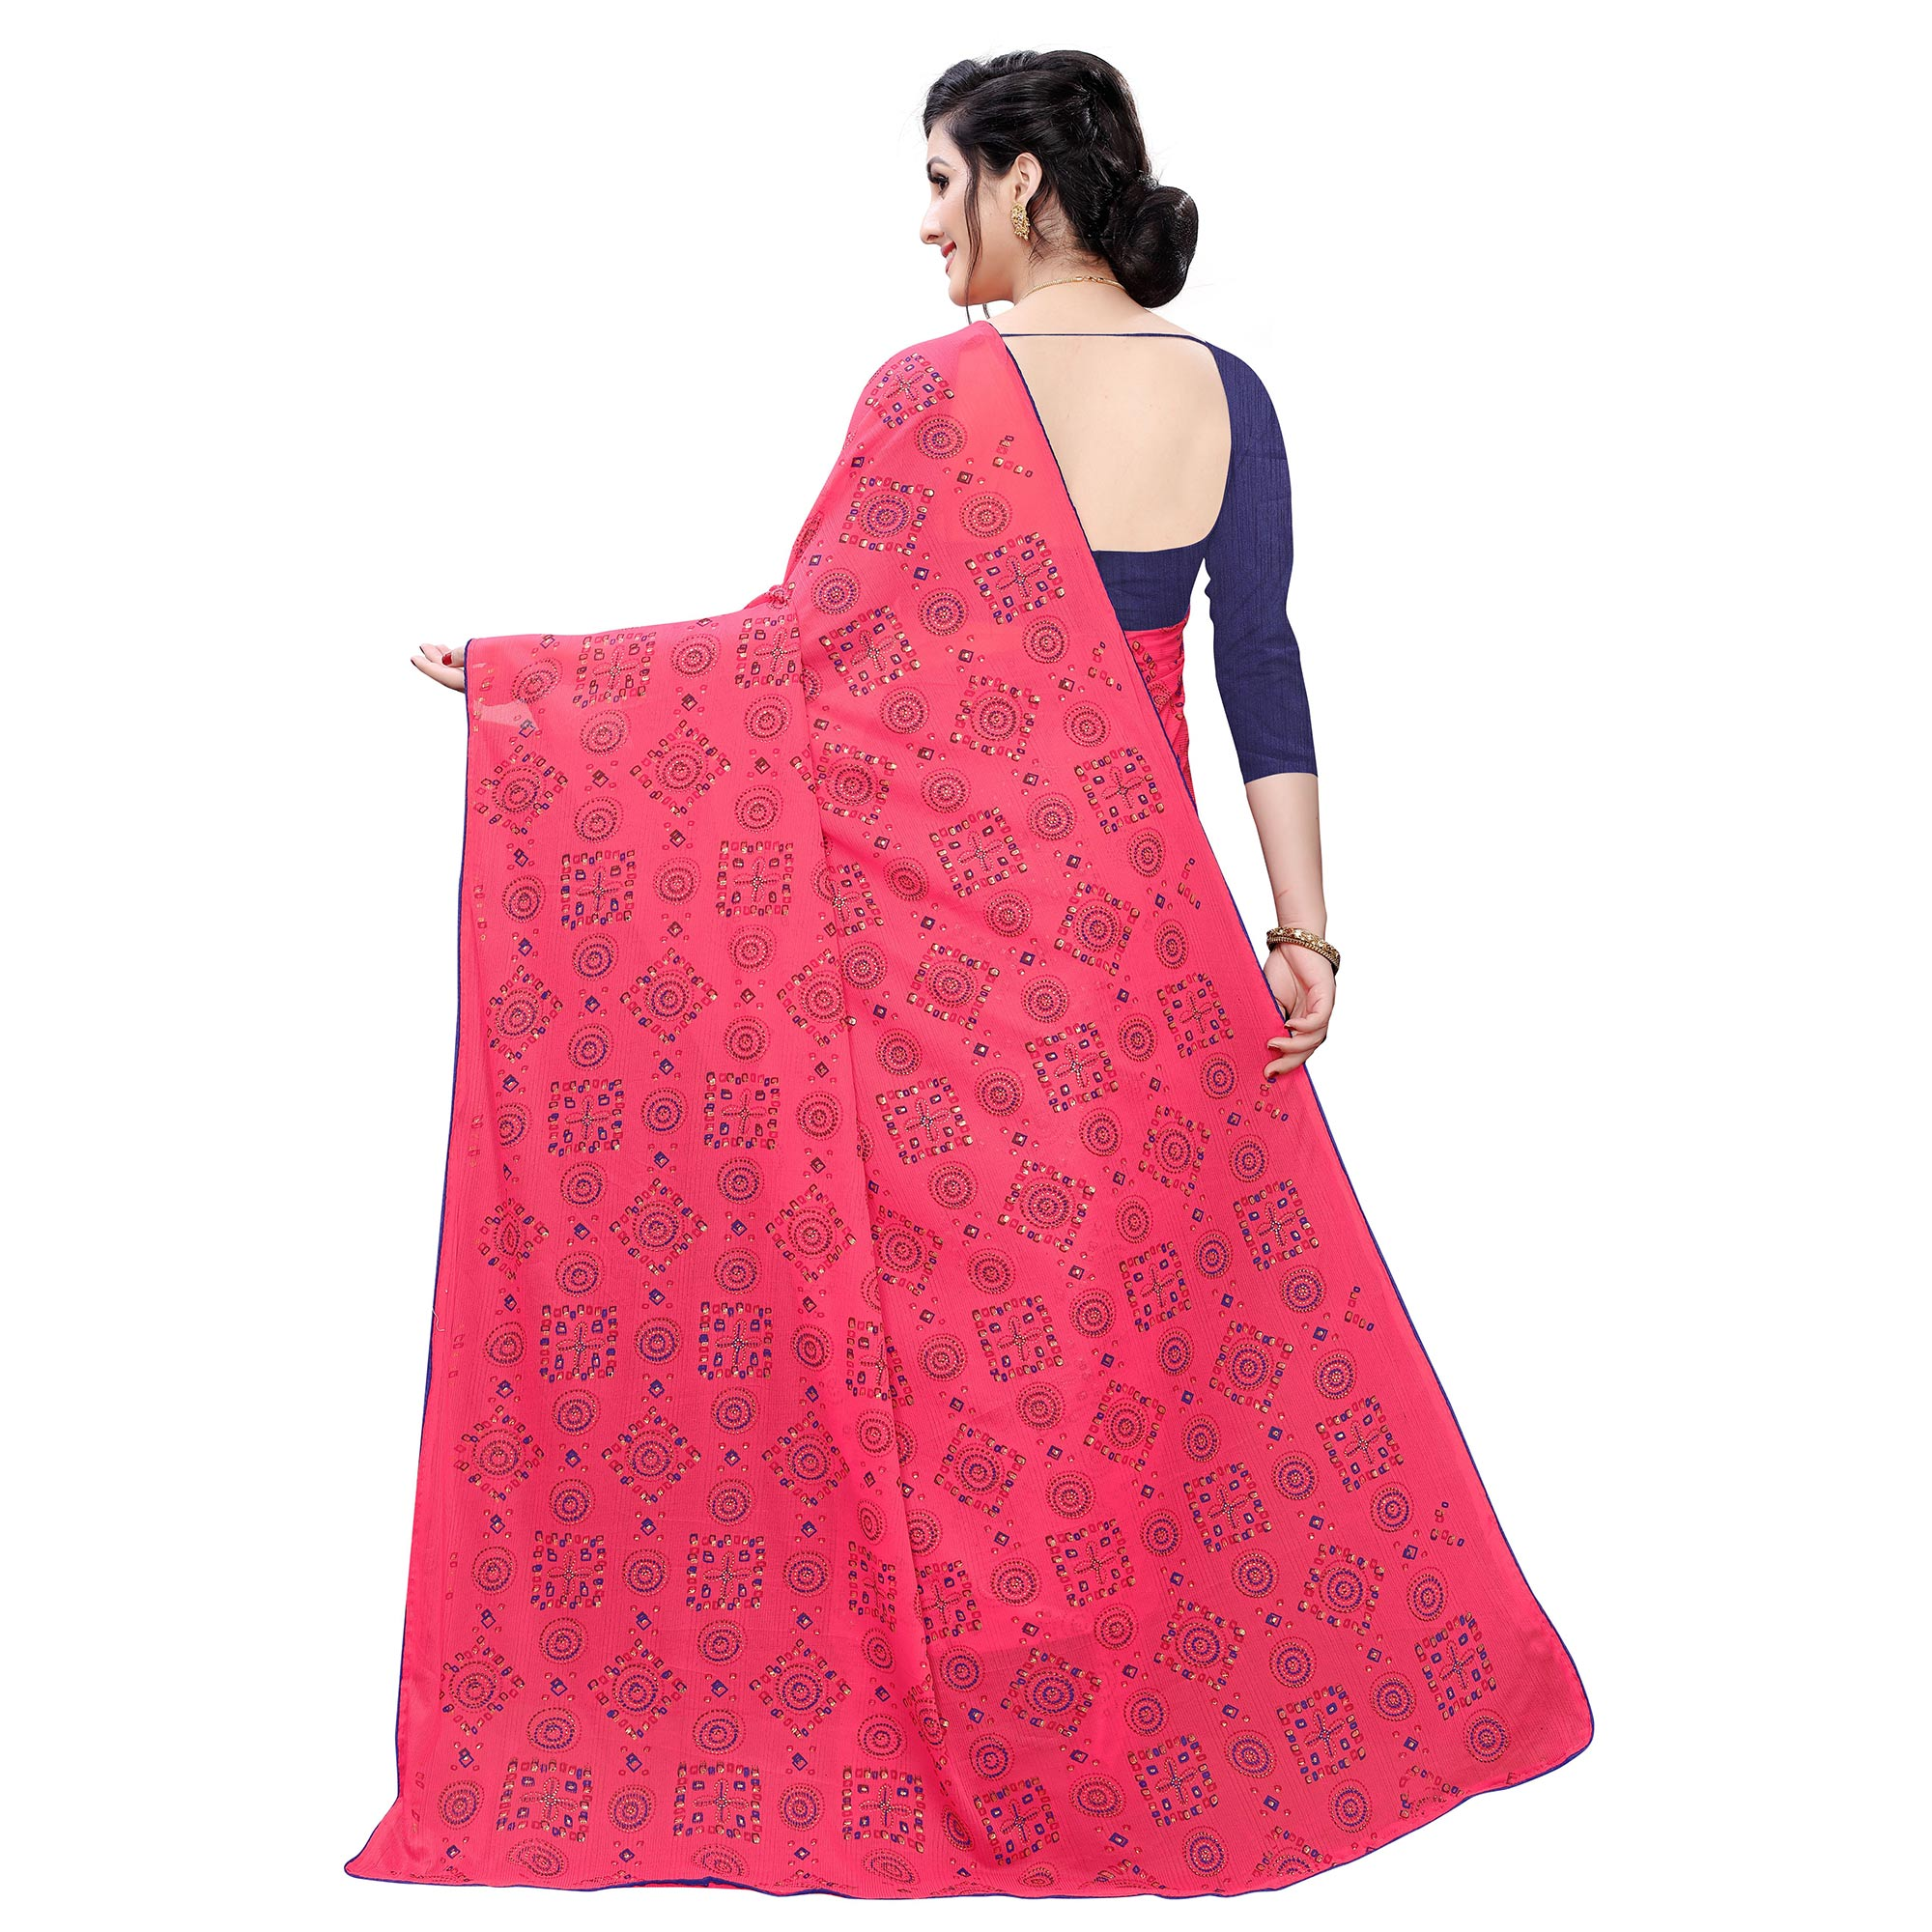 Captivating Pink Colored Casual Wear Printed Lycra Blend Saree